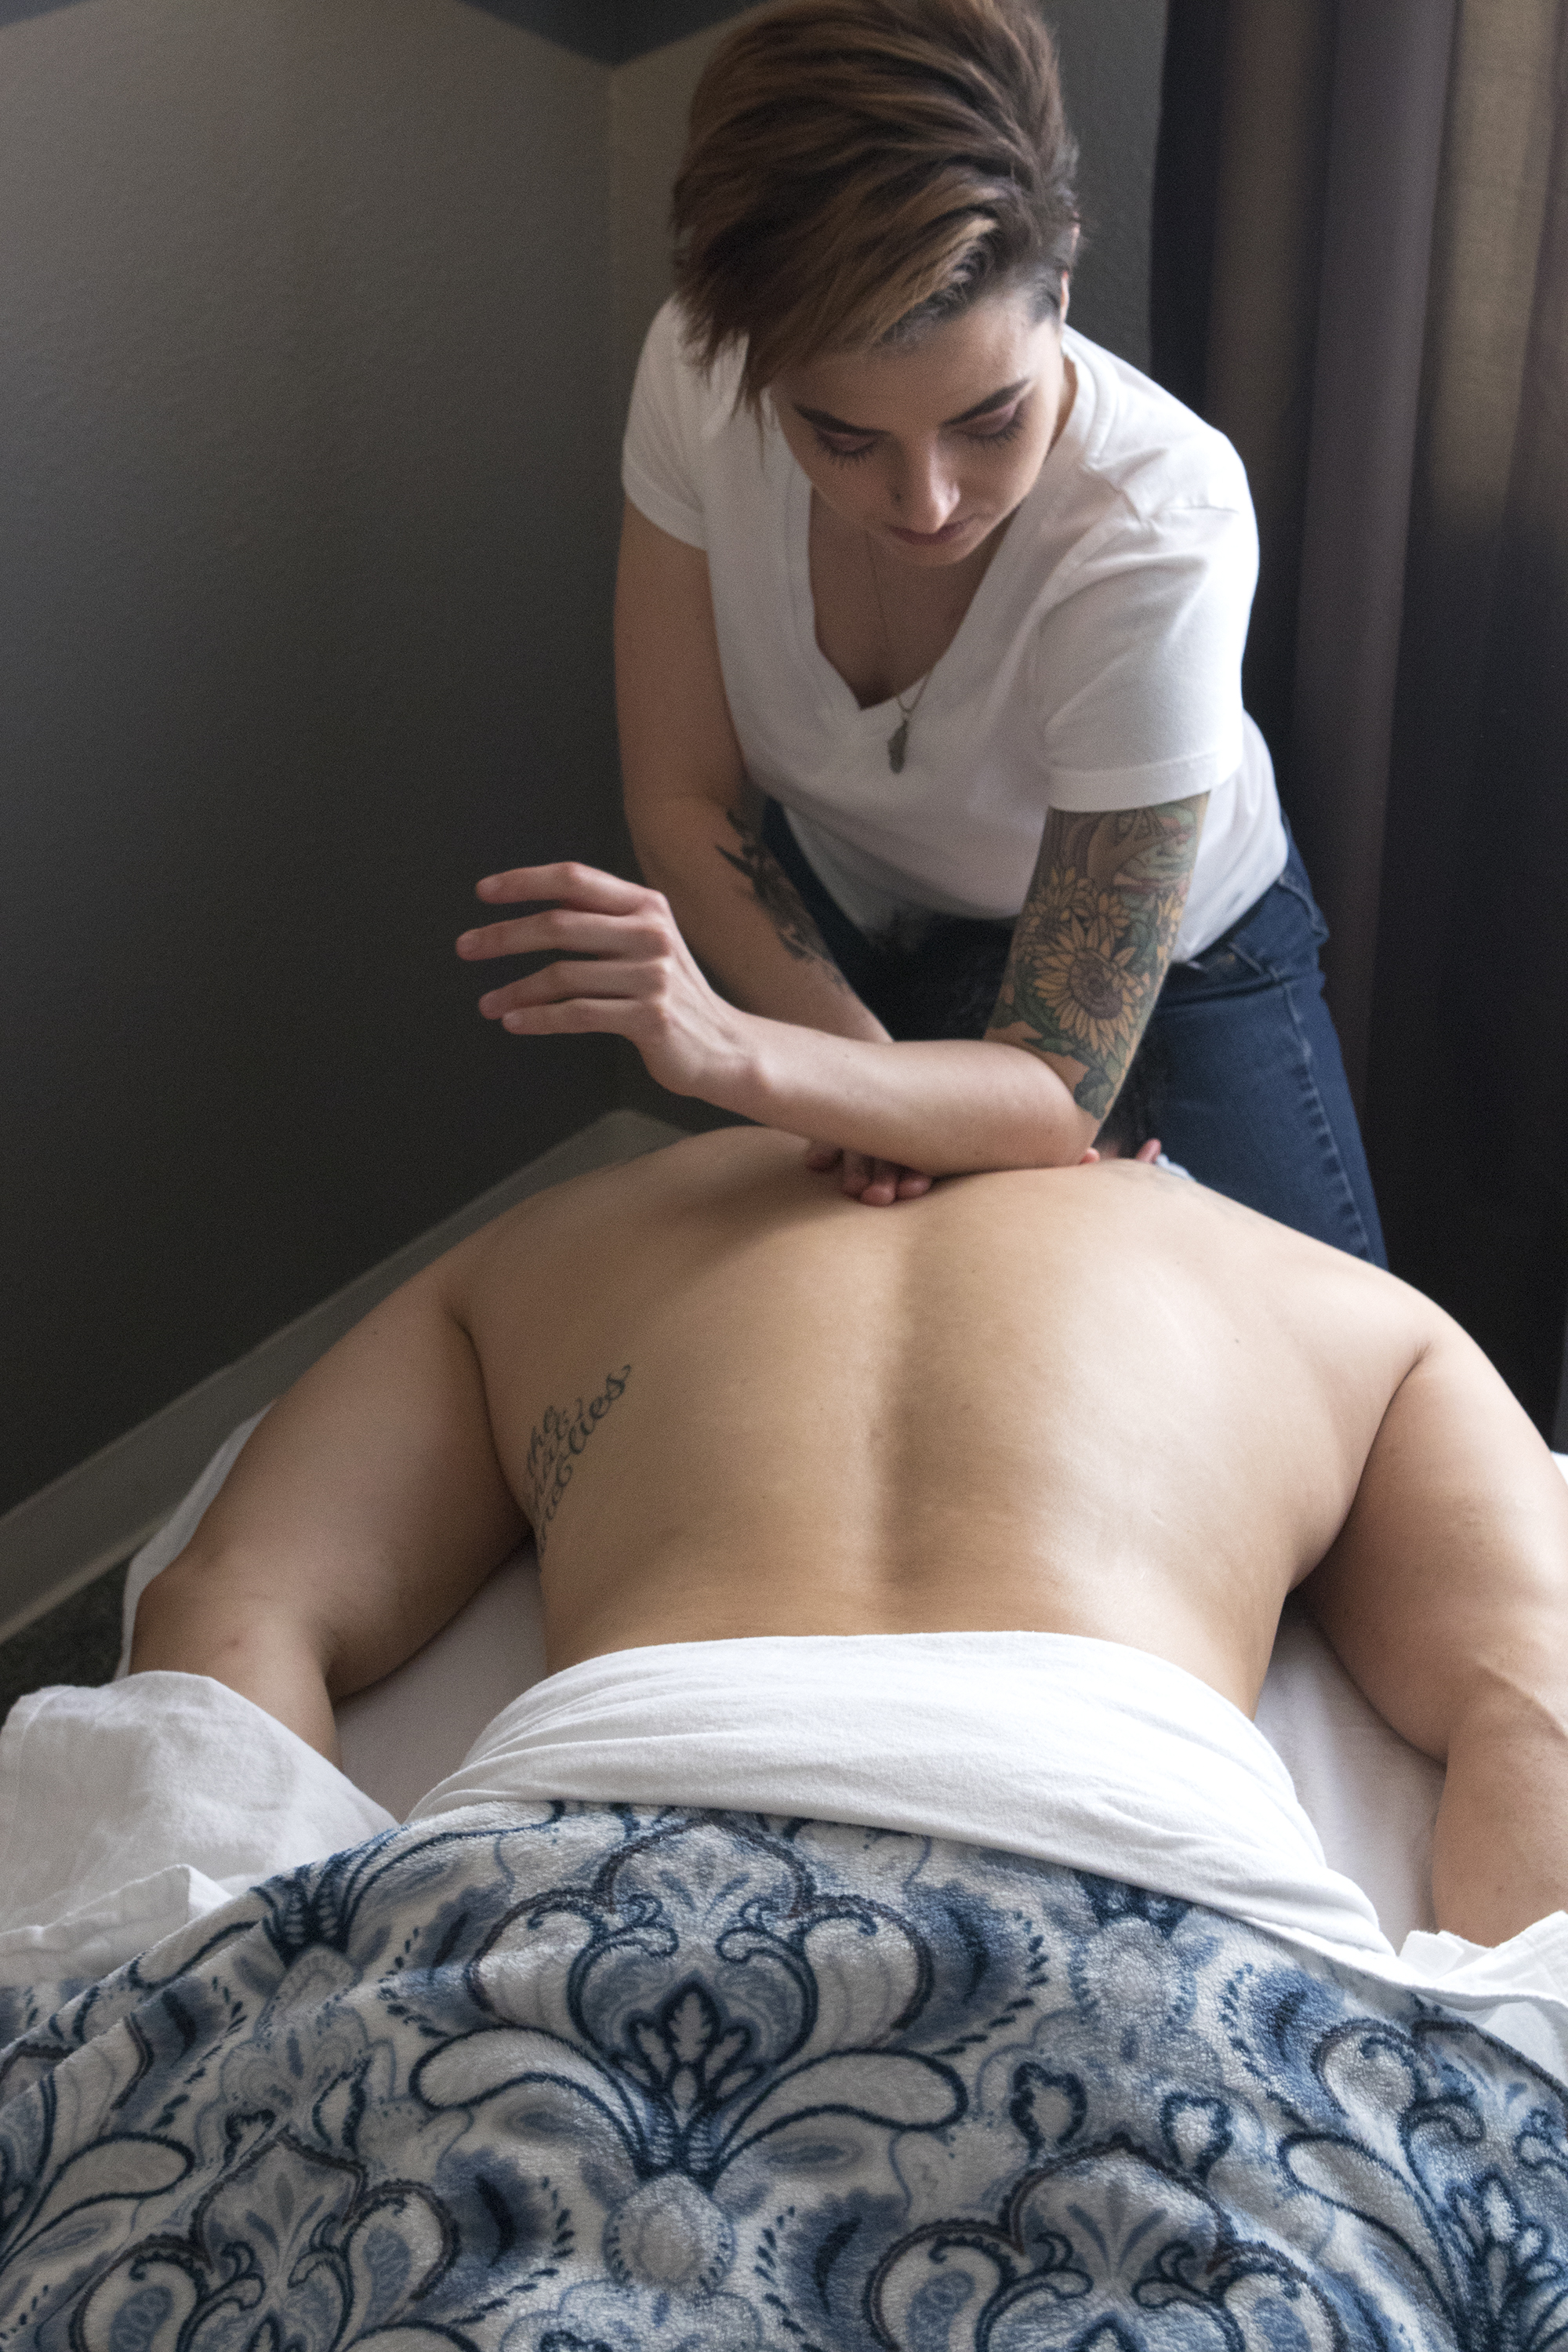 Deep Tissue - Deep Tissue Massage is a form of bodywork that aims to relieve tension in the deeper layers of tissue in the body. Deep Tissue Massage is a highly effective method for releasing chronic stress areas due to misalignment, repetitive motions, and past lingering injuries. Due to the nature of the deep tissue work, open communication during the session is crucial to make sure you don't get too uncomfortable. Keep in mind that soreness is pretty common after the treatment, and that plenty of water should be ingested to aid with the flushing and removal of cellular debris that will have been released from the deep tissue during the session.